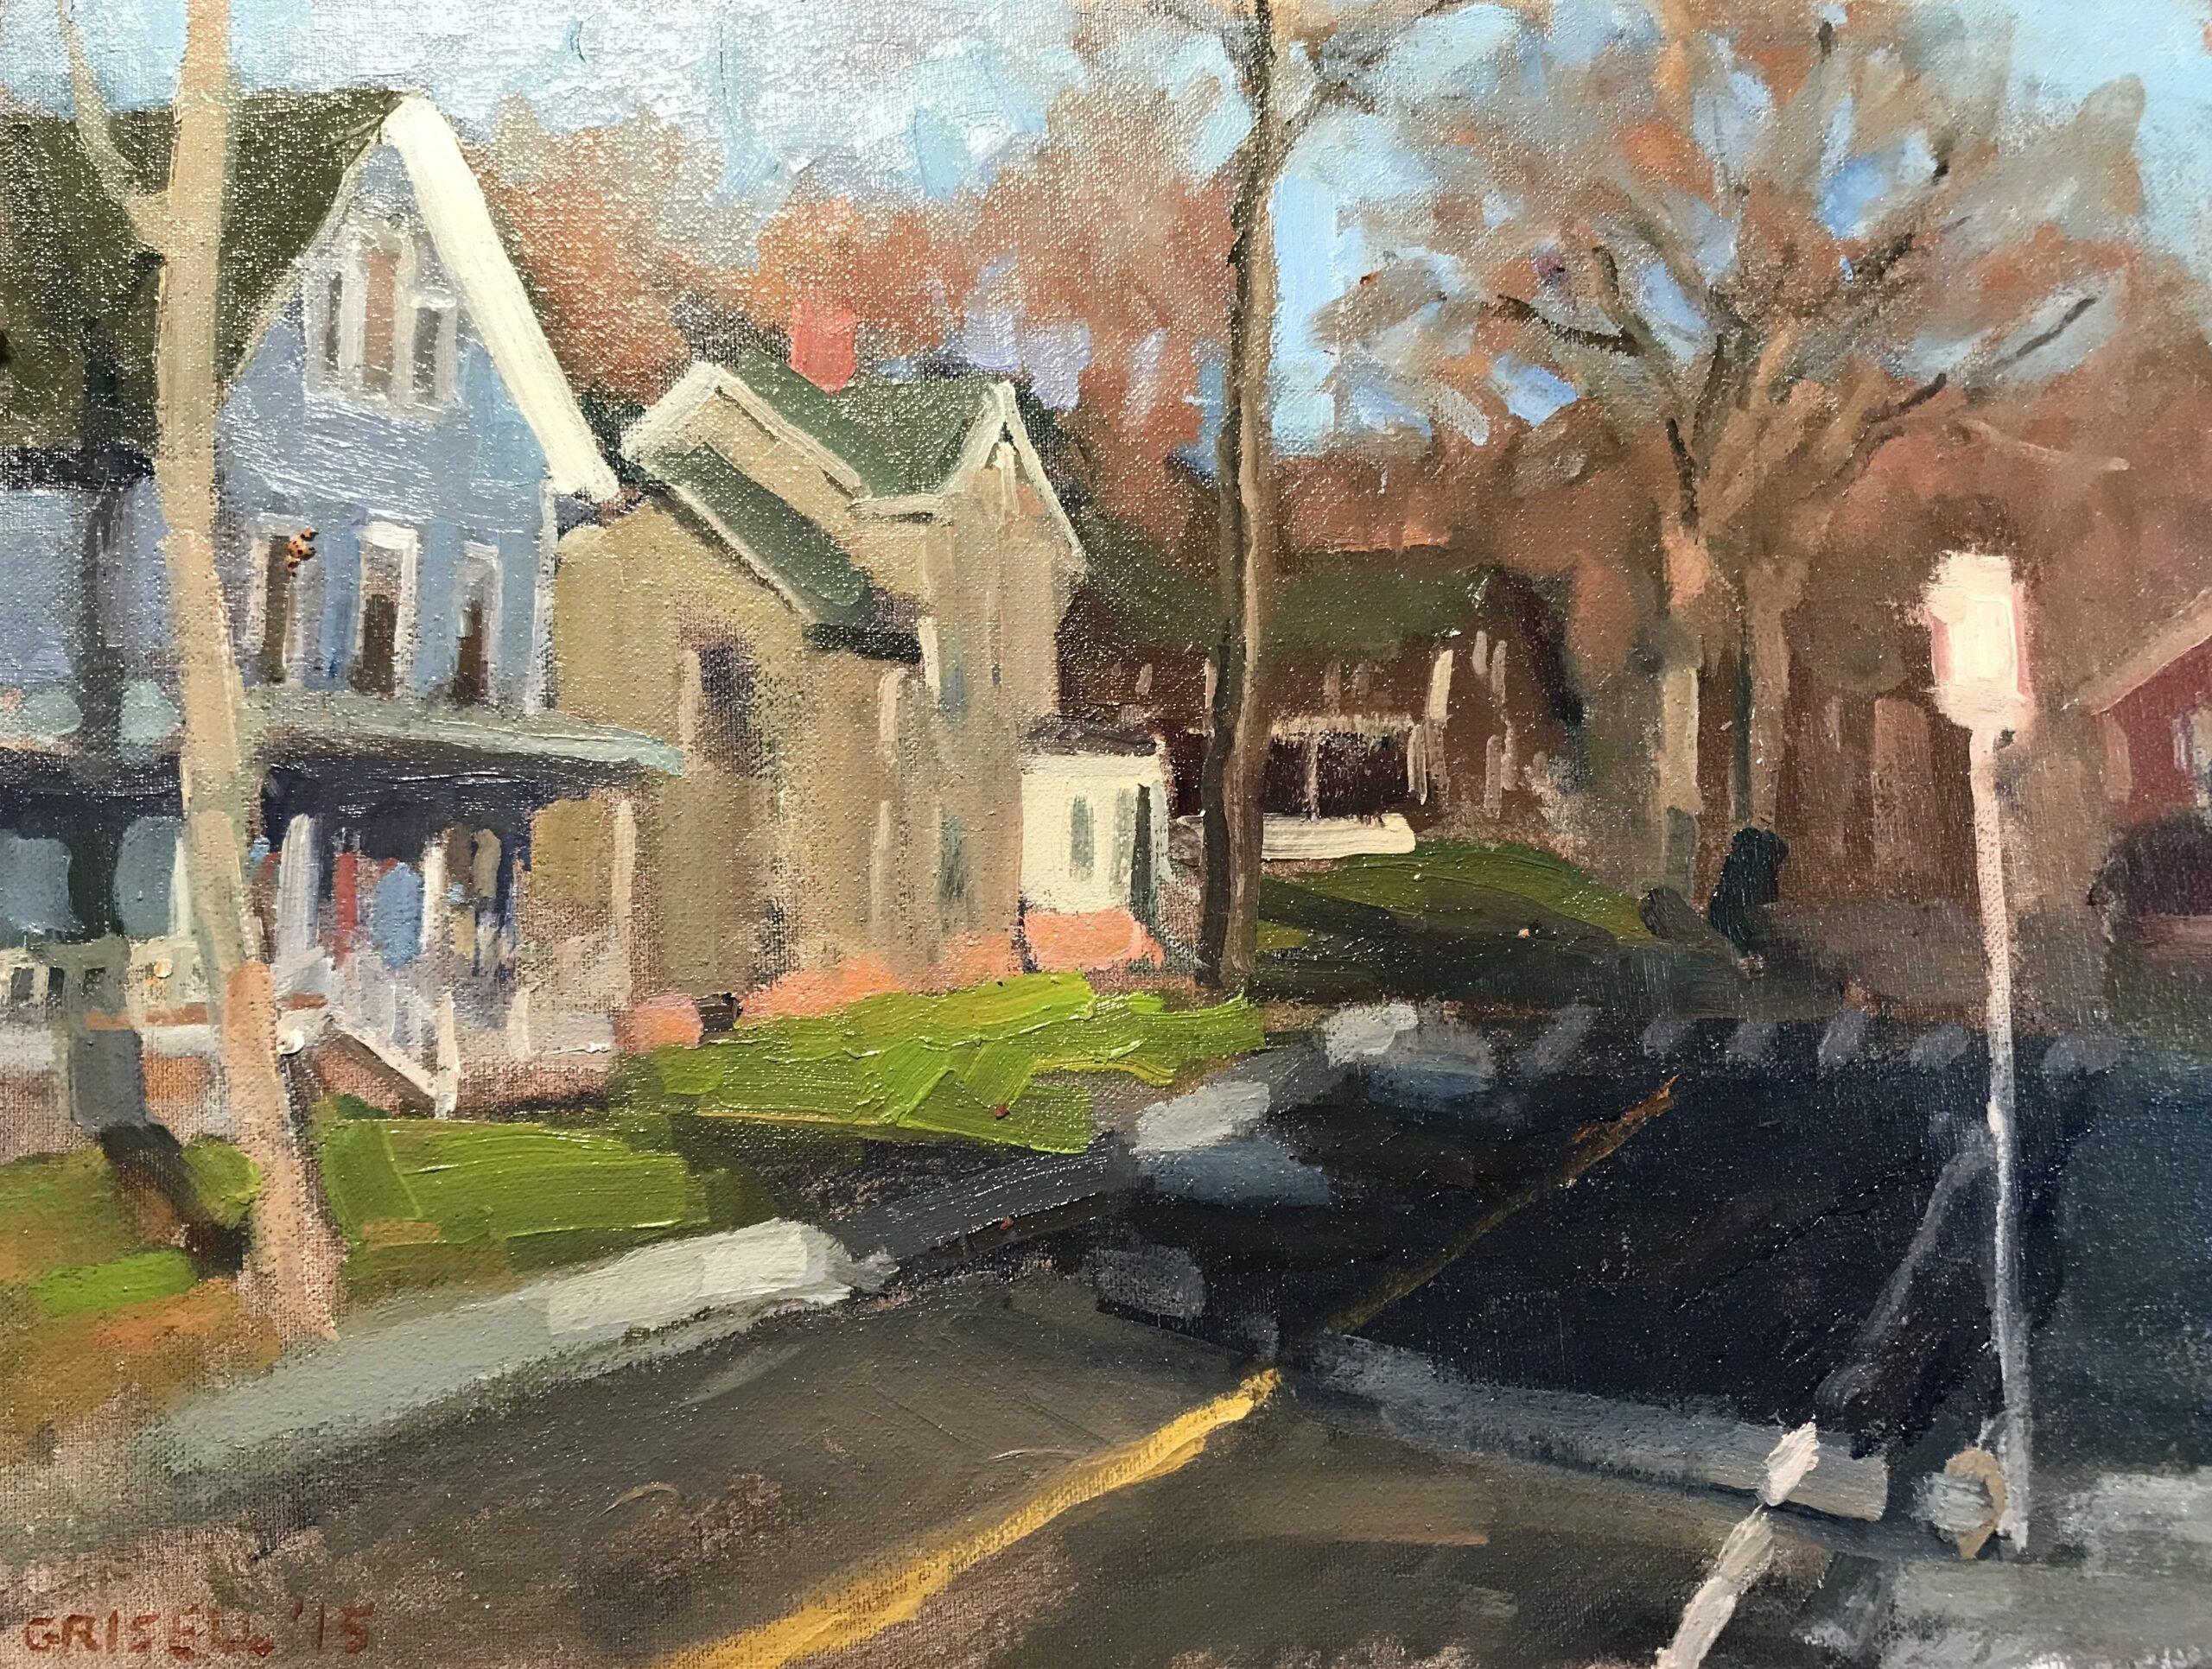 """""""Church Street"""", Oil on Canvas on Panel, 12 x 16 Inches, by Susan Grisell $325"""